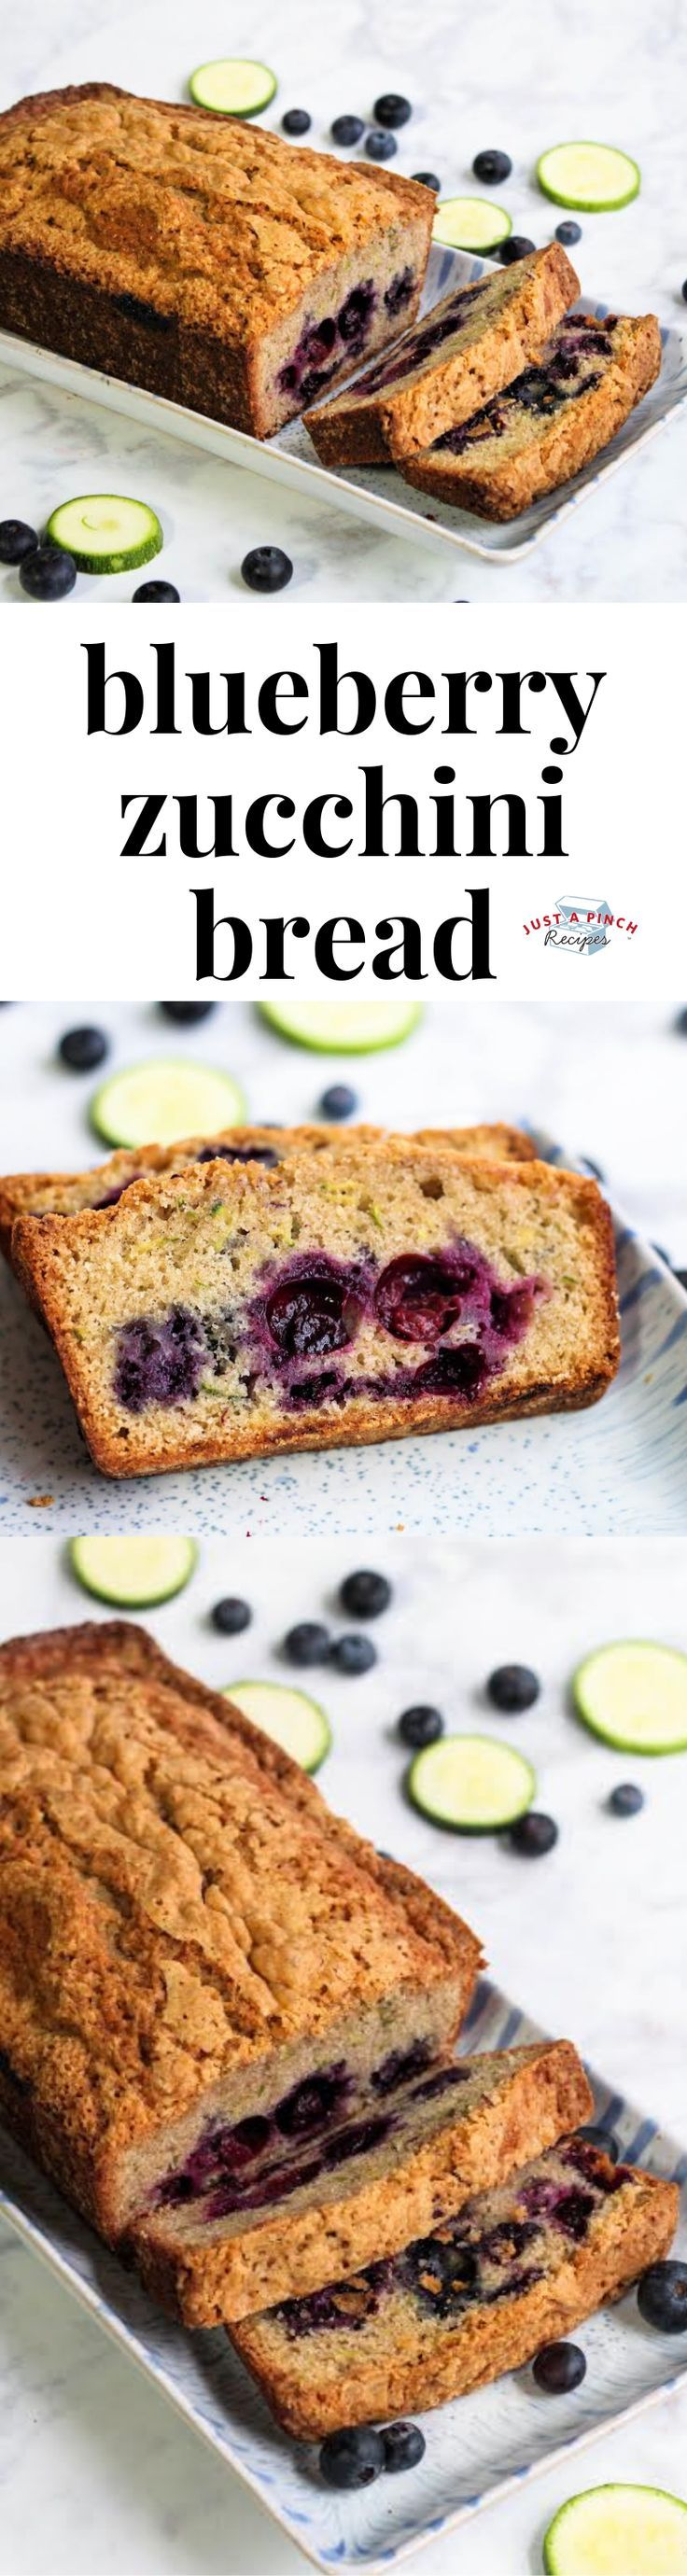 Blueberry Zucchini Bread Blueberry Zucchini Bread |  The bread is super moist with cinnamon flavor throughout. We loved the pop of sweet and tartness from the blueberries in every bite. This will be great for breakfast or as a light dessert.